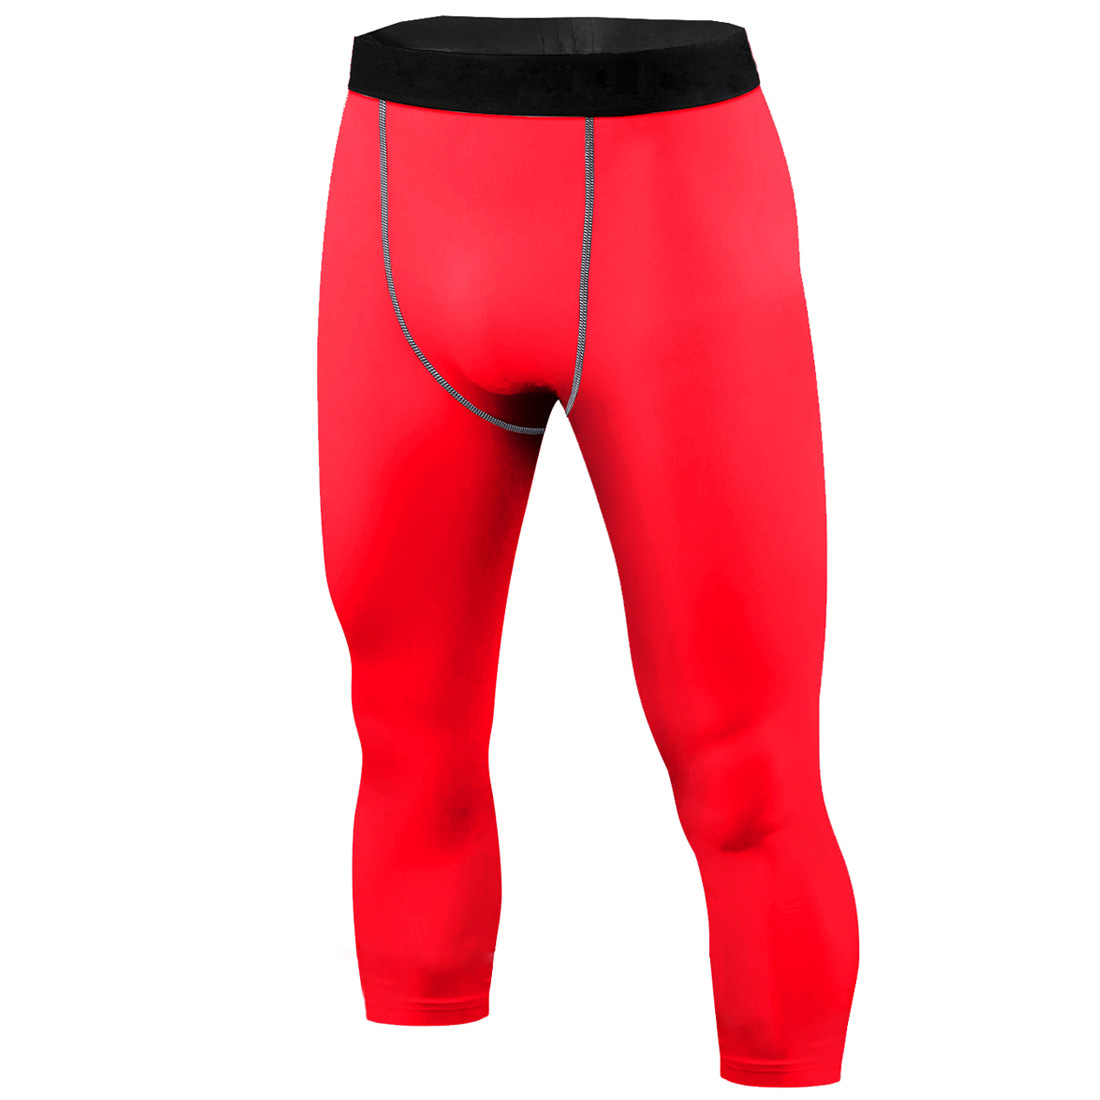 Men's Sleeveless One Piece Shorts Thermal Underwear $ 14 95 Prime. out of 5 stars Rebel Canyon. Men's Young Super Soft Thermal Lounge Shorts $ 24 95 Prime. 4 out of 5 stars 6. Tesla. Men's Thermal Wintergear Compression Baselayer Long Sleeve Top. .